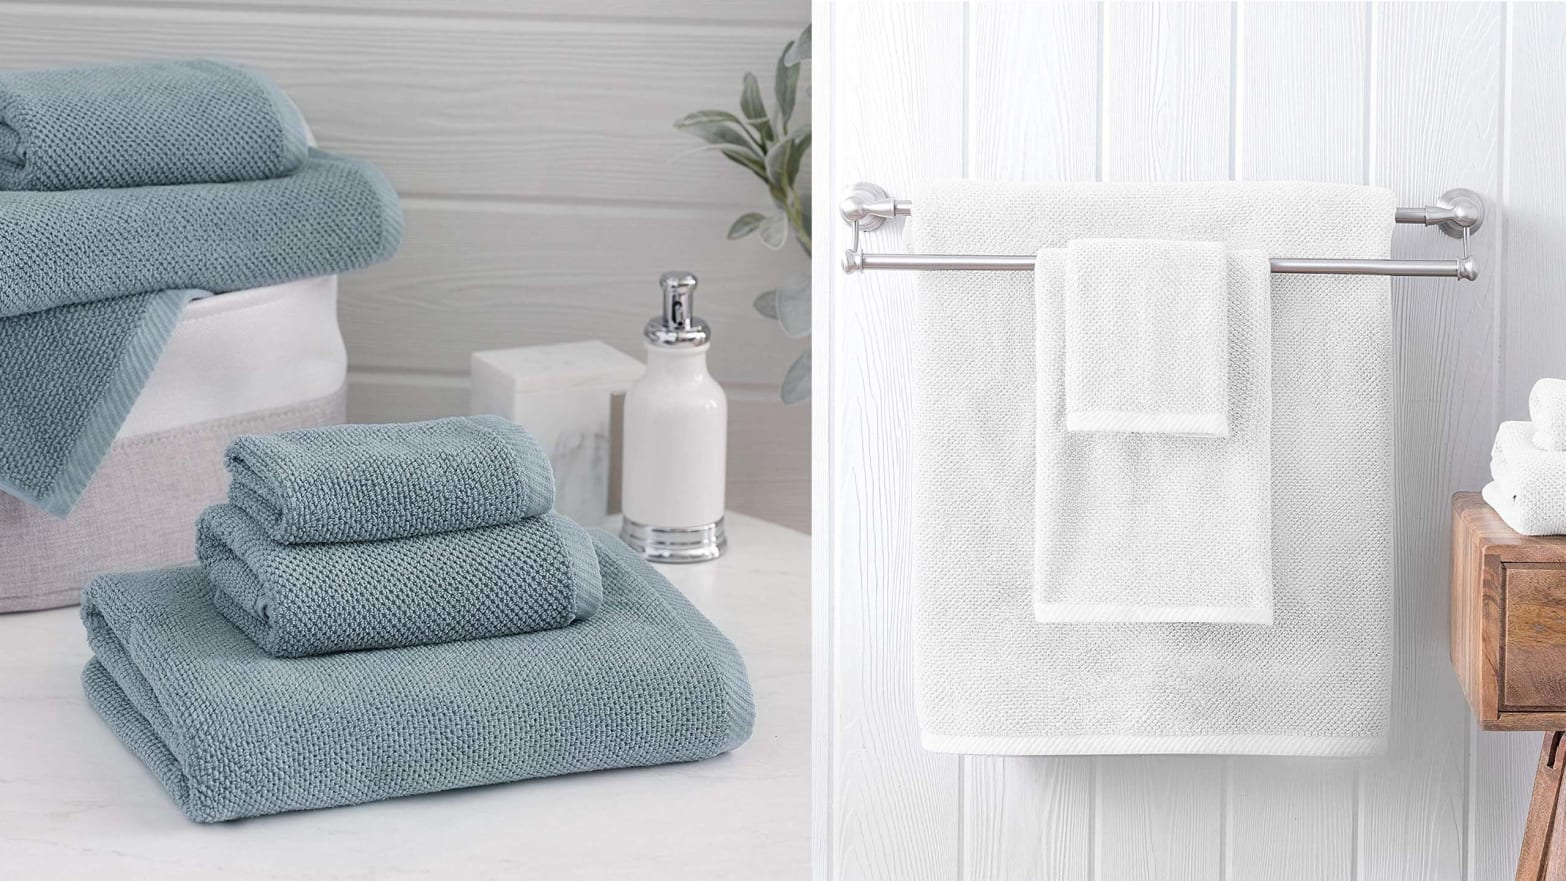 Get Hotel-Level Towels for Your Bathroom on Amazon